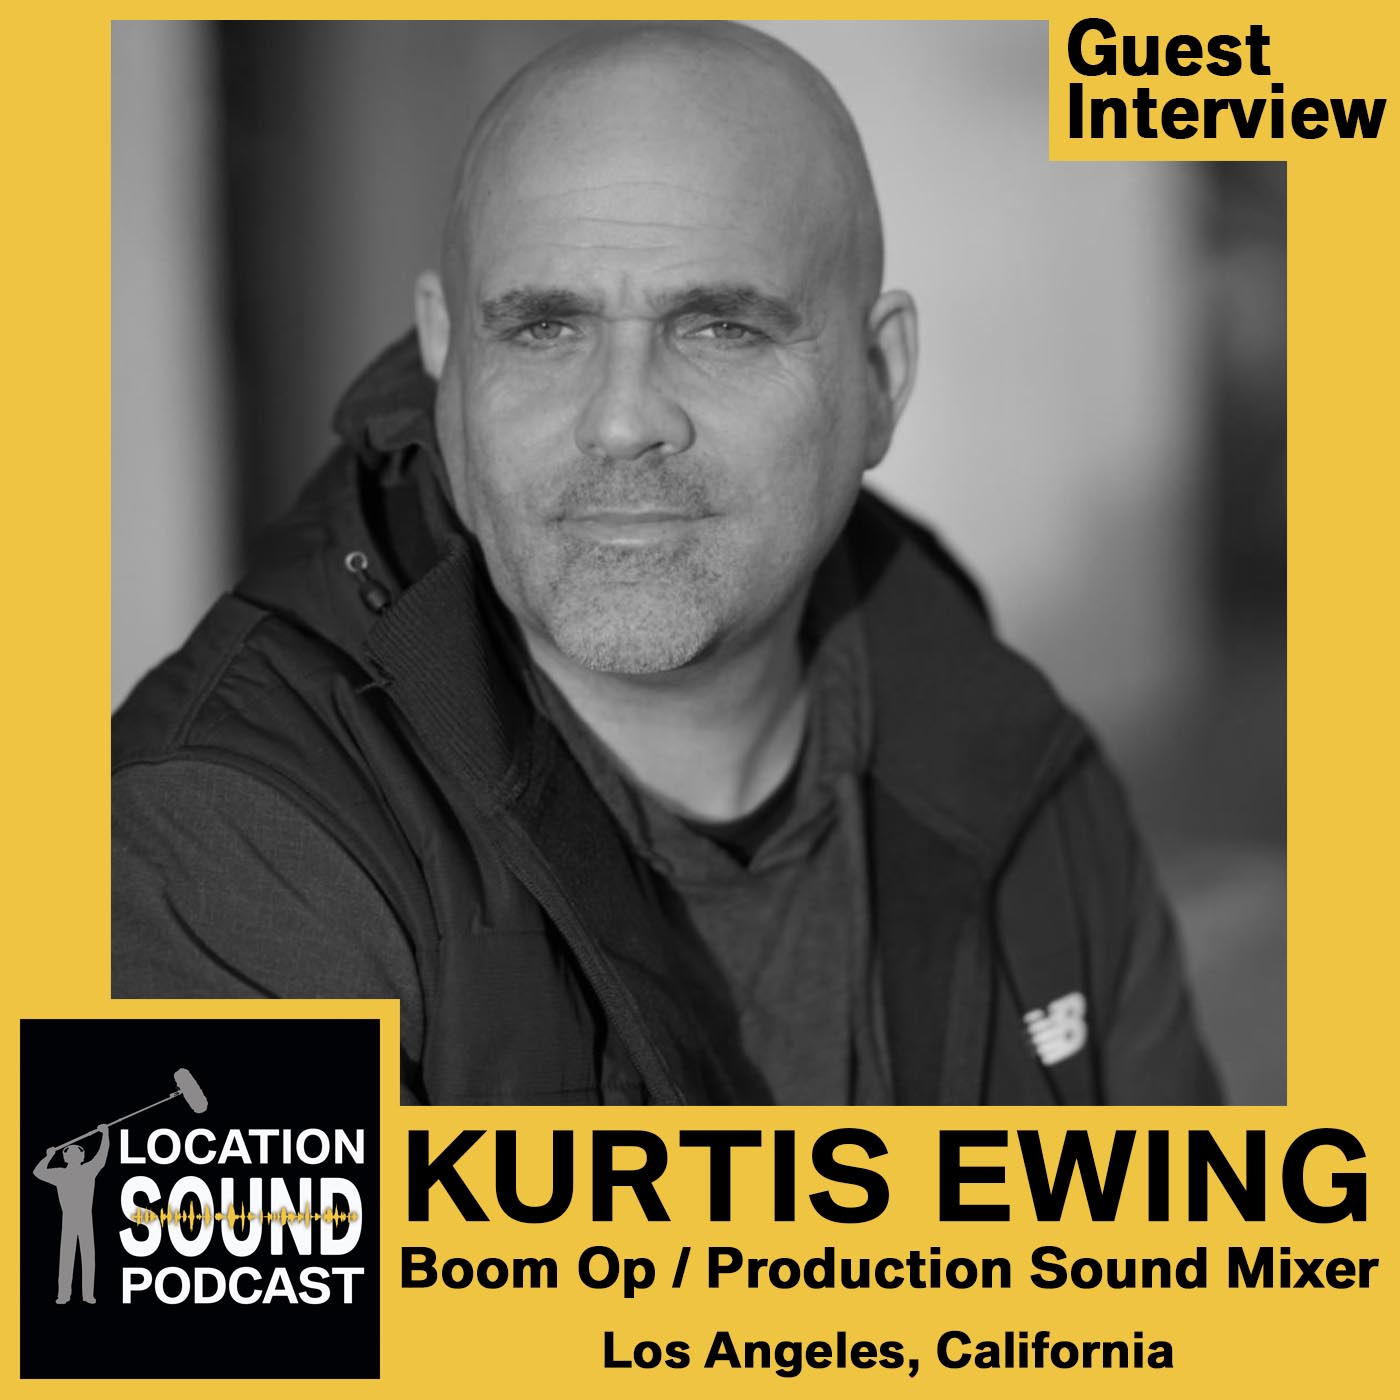 076 Kurtis Ewing - Production Sound Mixer based out of Los Angeles, California